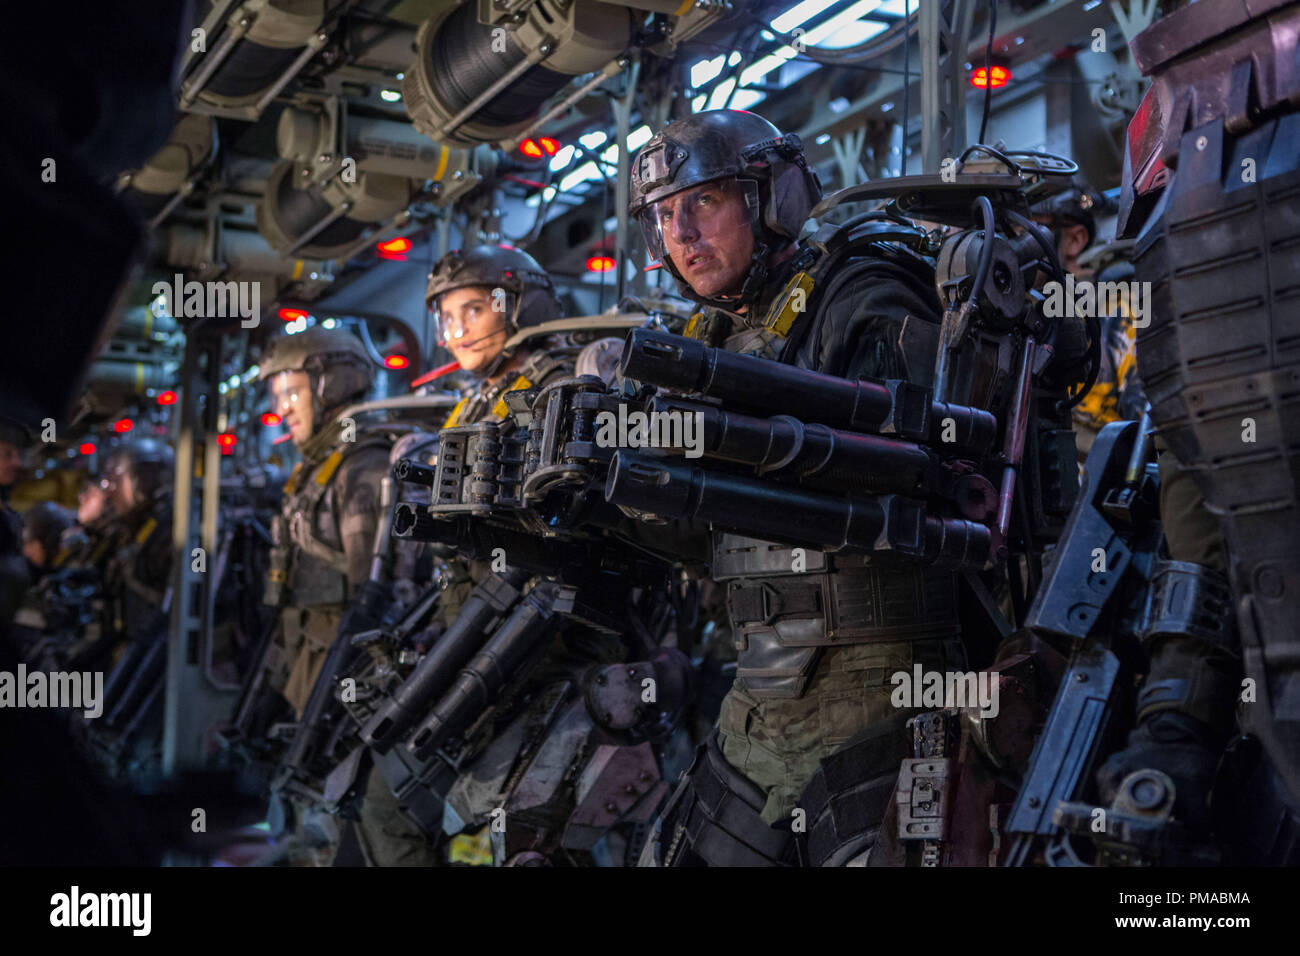 TOM CRUISE (center) as Cage in Warner Bros. Pictures' and Village Roadshow Pictures' sci-fi thriller 'EDGE OF TOMORROW' - Stock Image